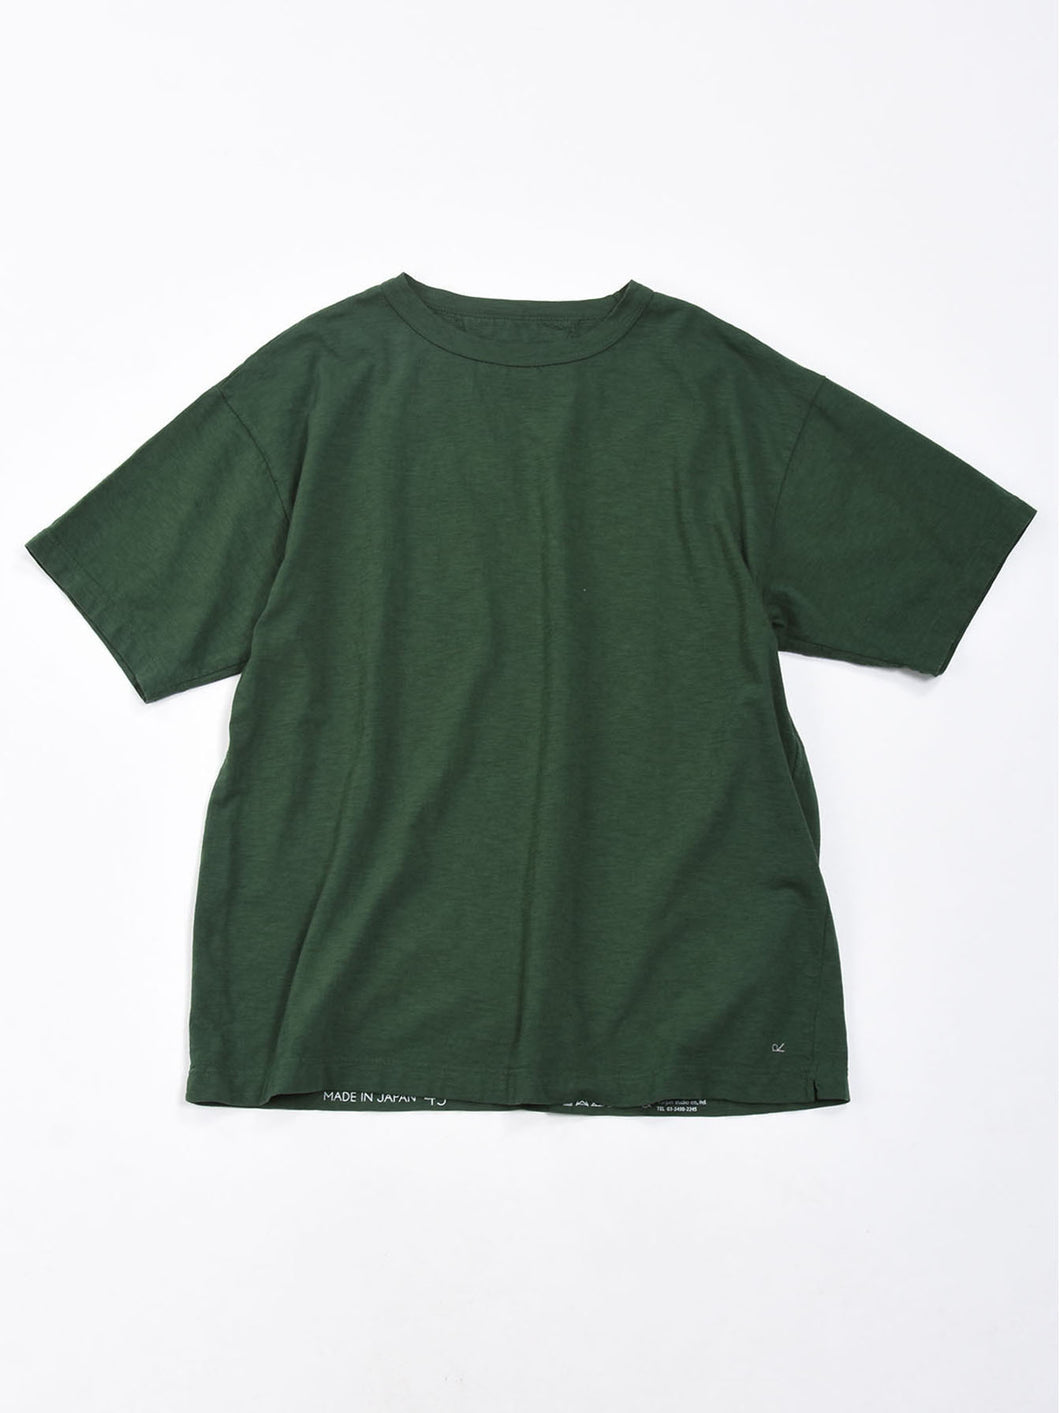 Zimbabwe Cotton 45 Star Short Sleeve T-Shirt in green